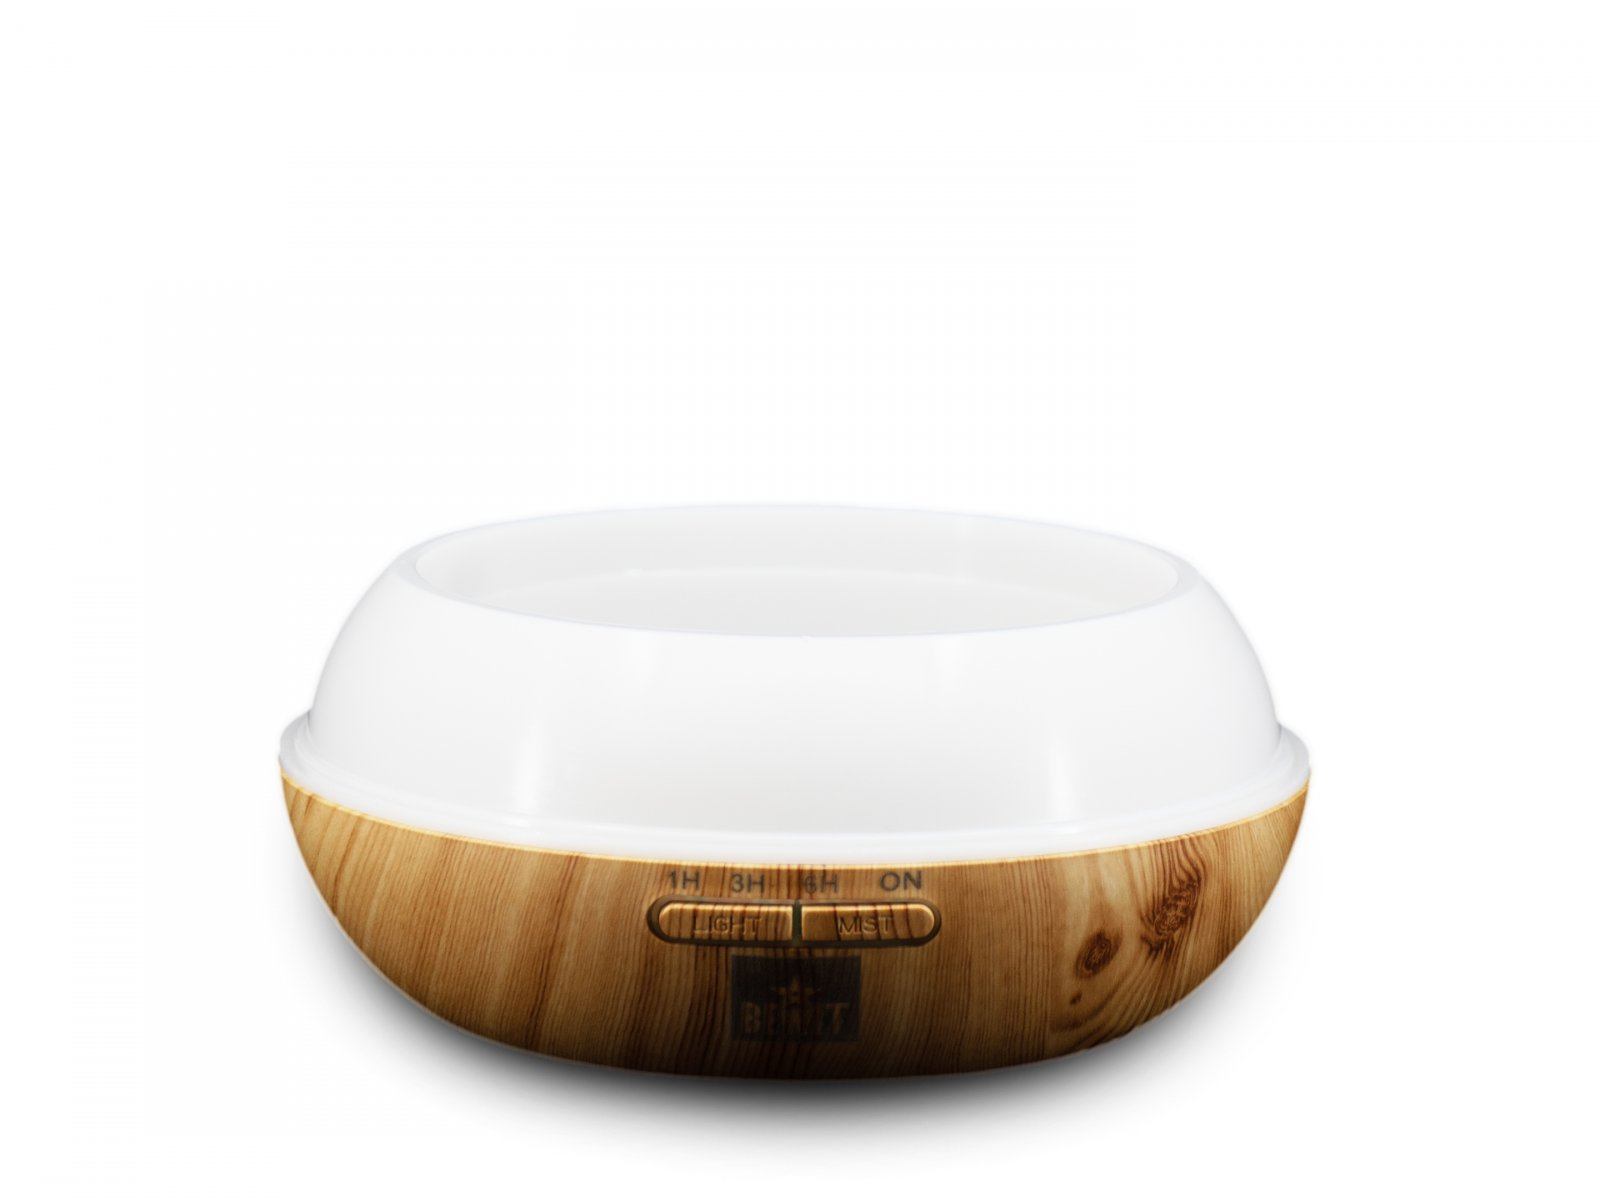 Aroma-Diffusor SMELL 300 light wood -  - 2